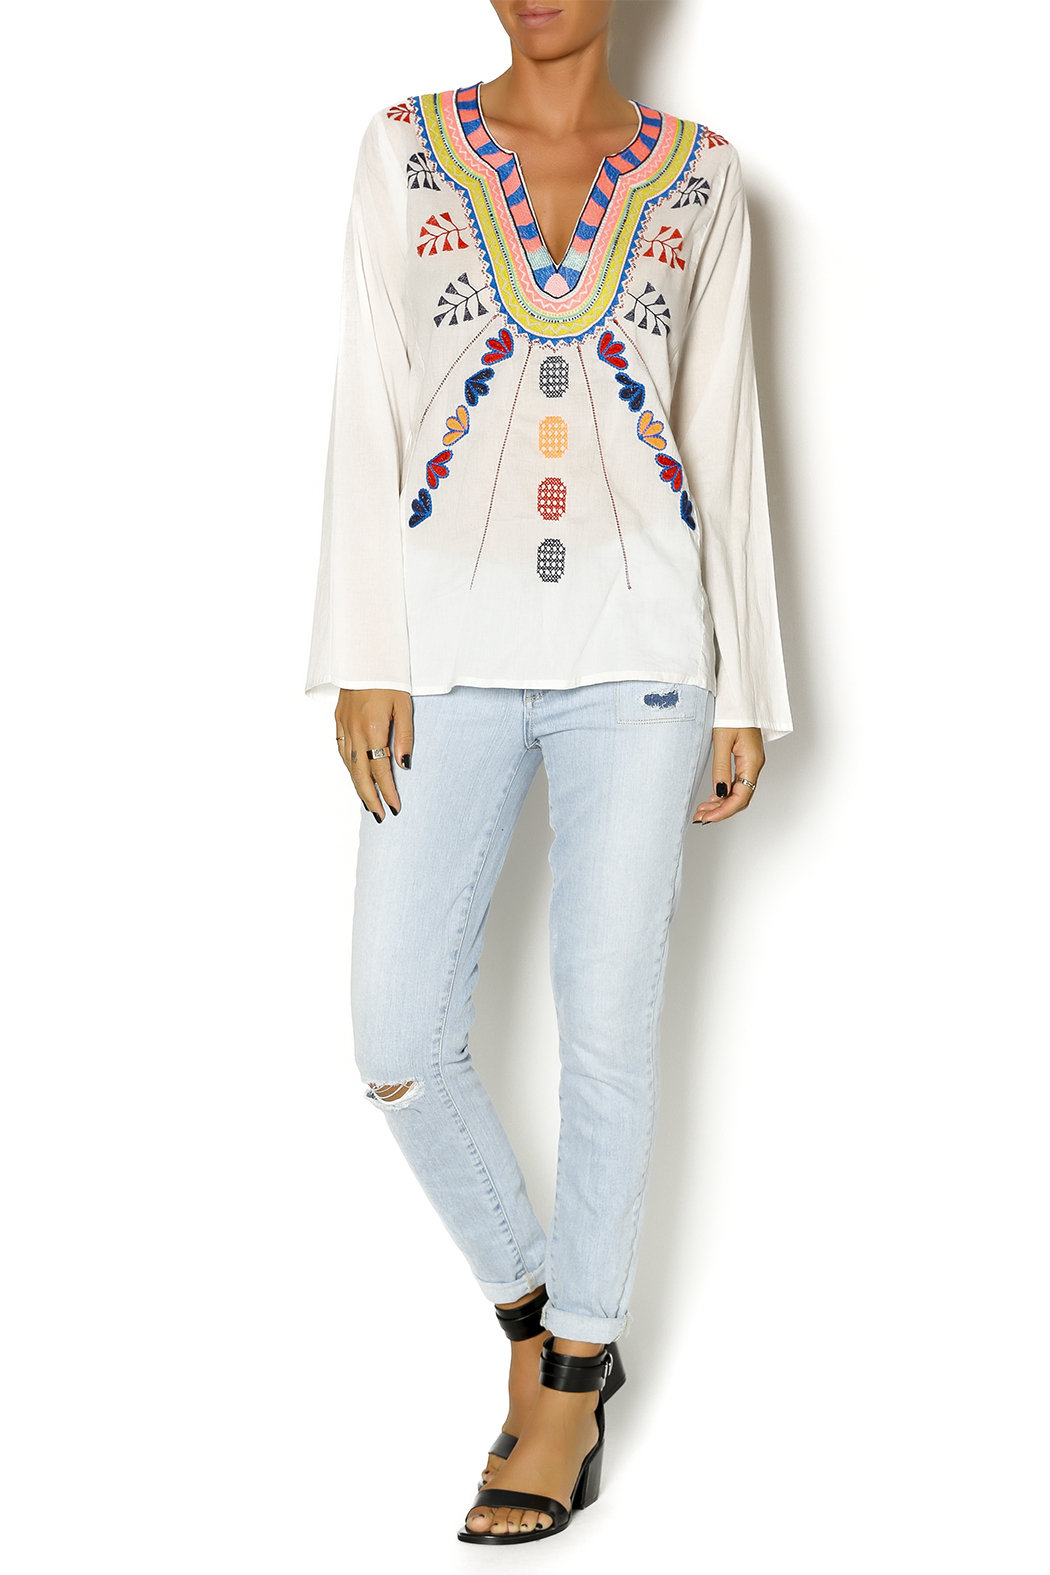 Christophe Sauvat Embroidered Ethnic Top - Front Full Image